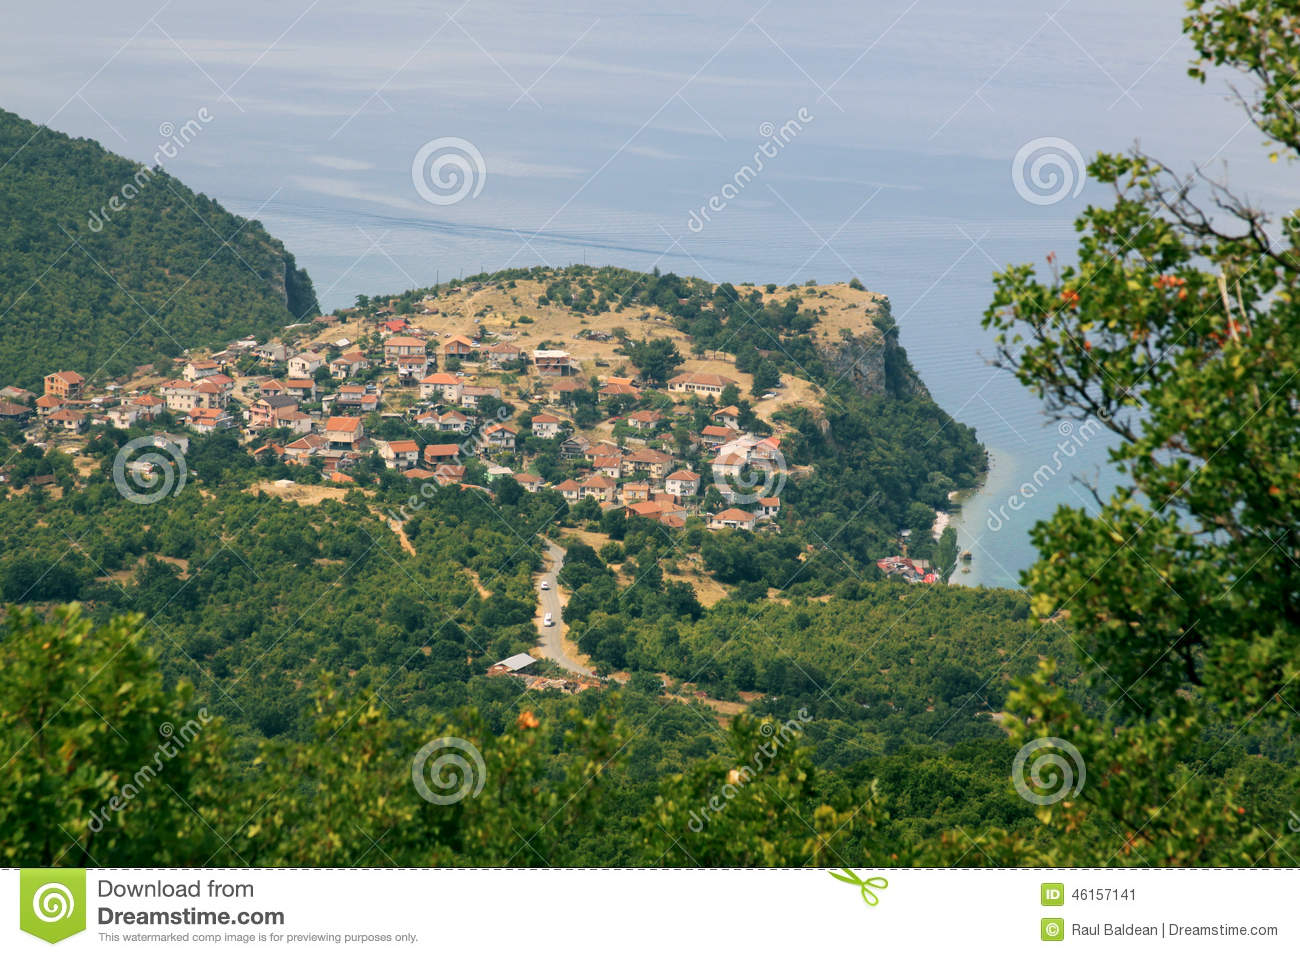 Lake Ohrid and Trpejca view from above